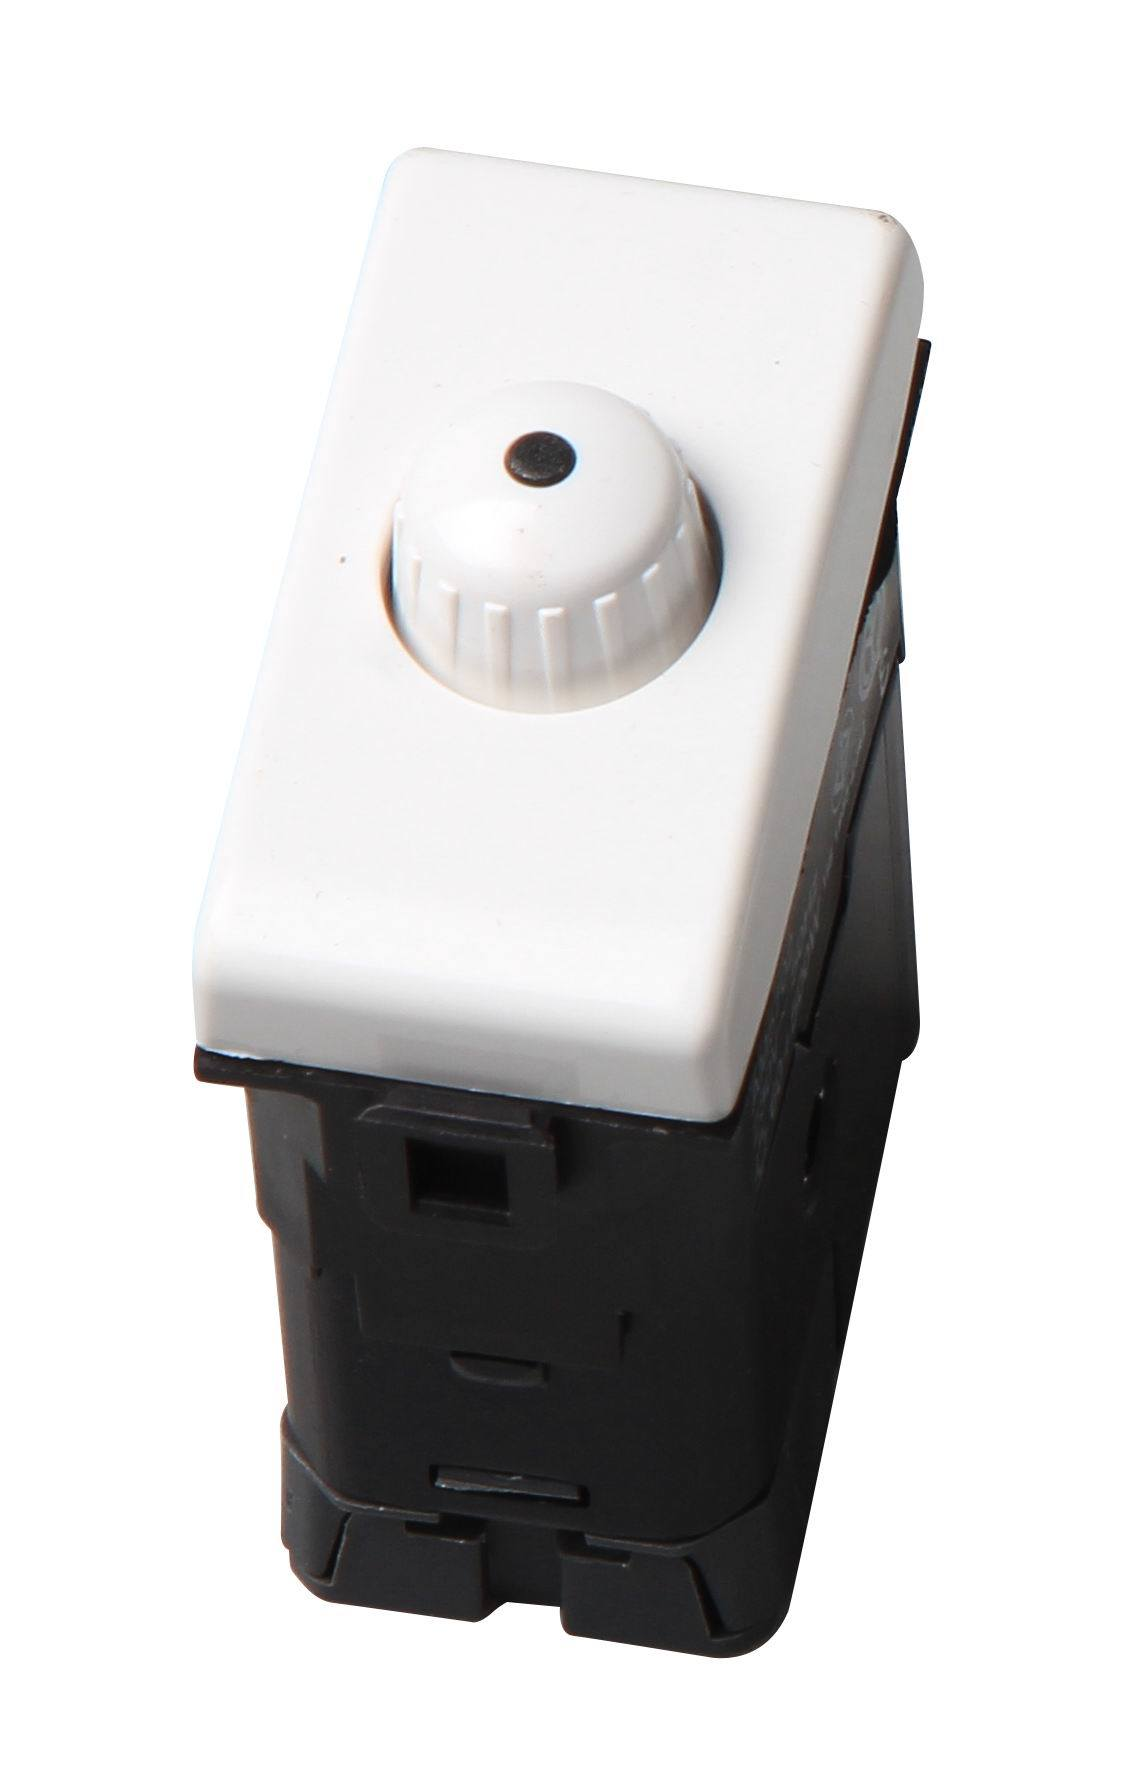 Ma136 Factroy Hot Sale Italian Dimmer Wall Switch